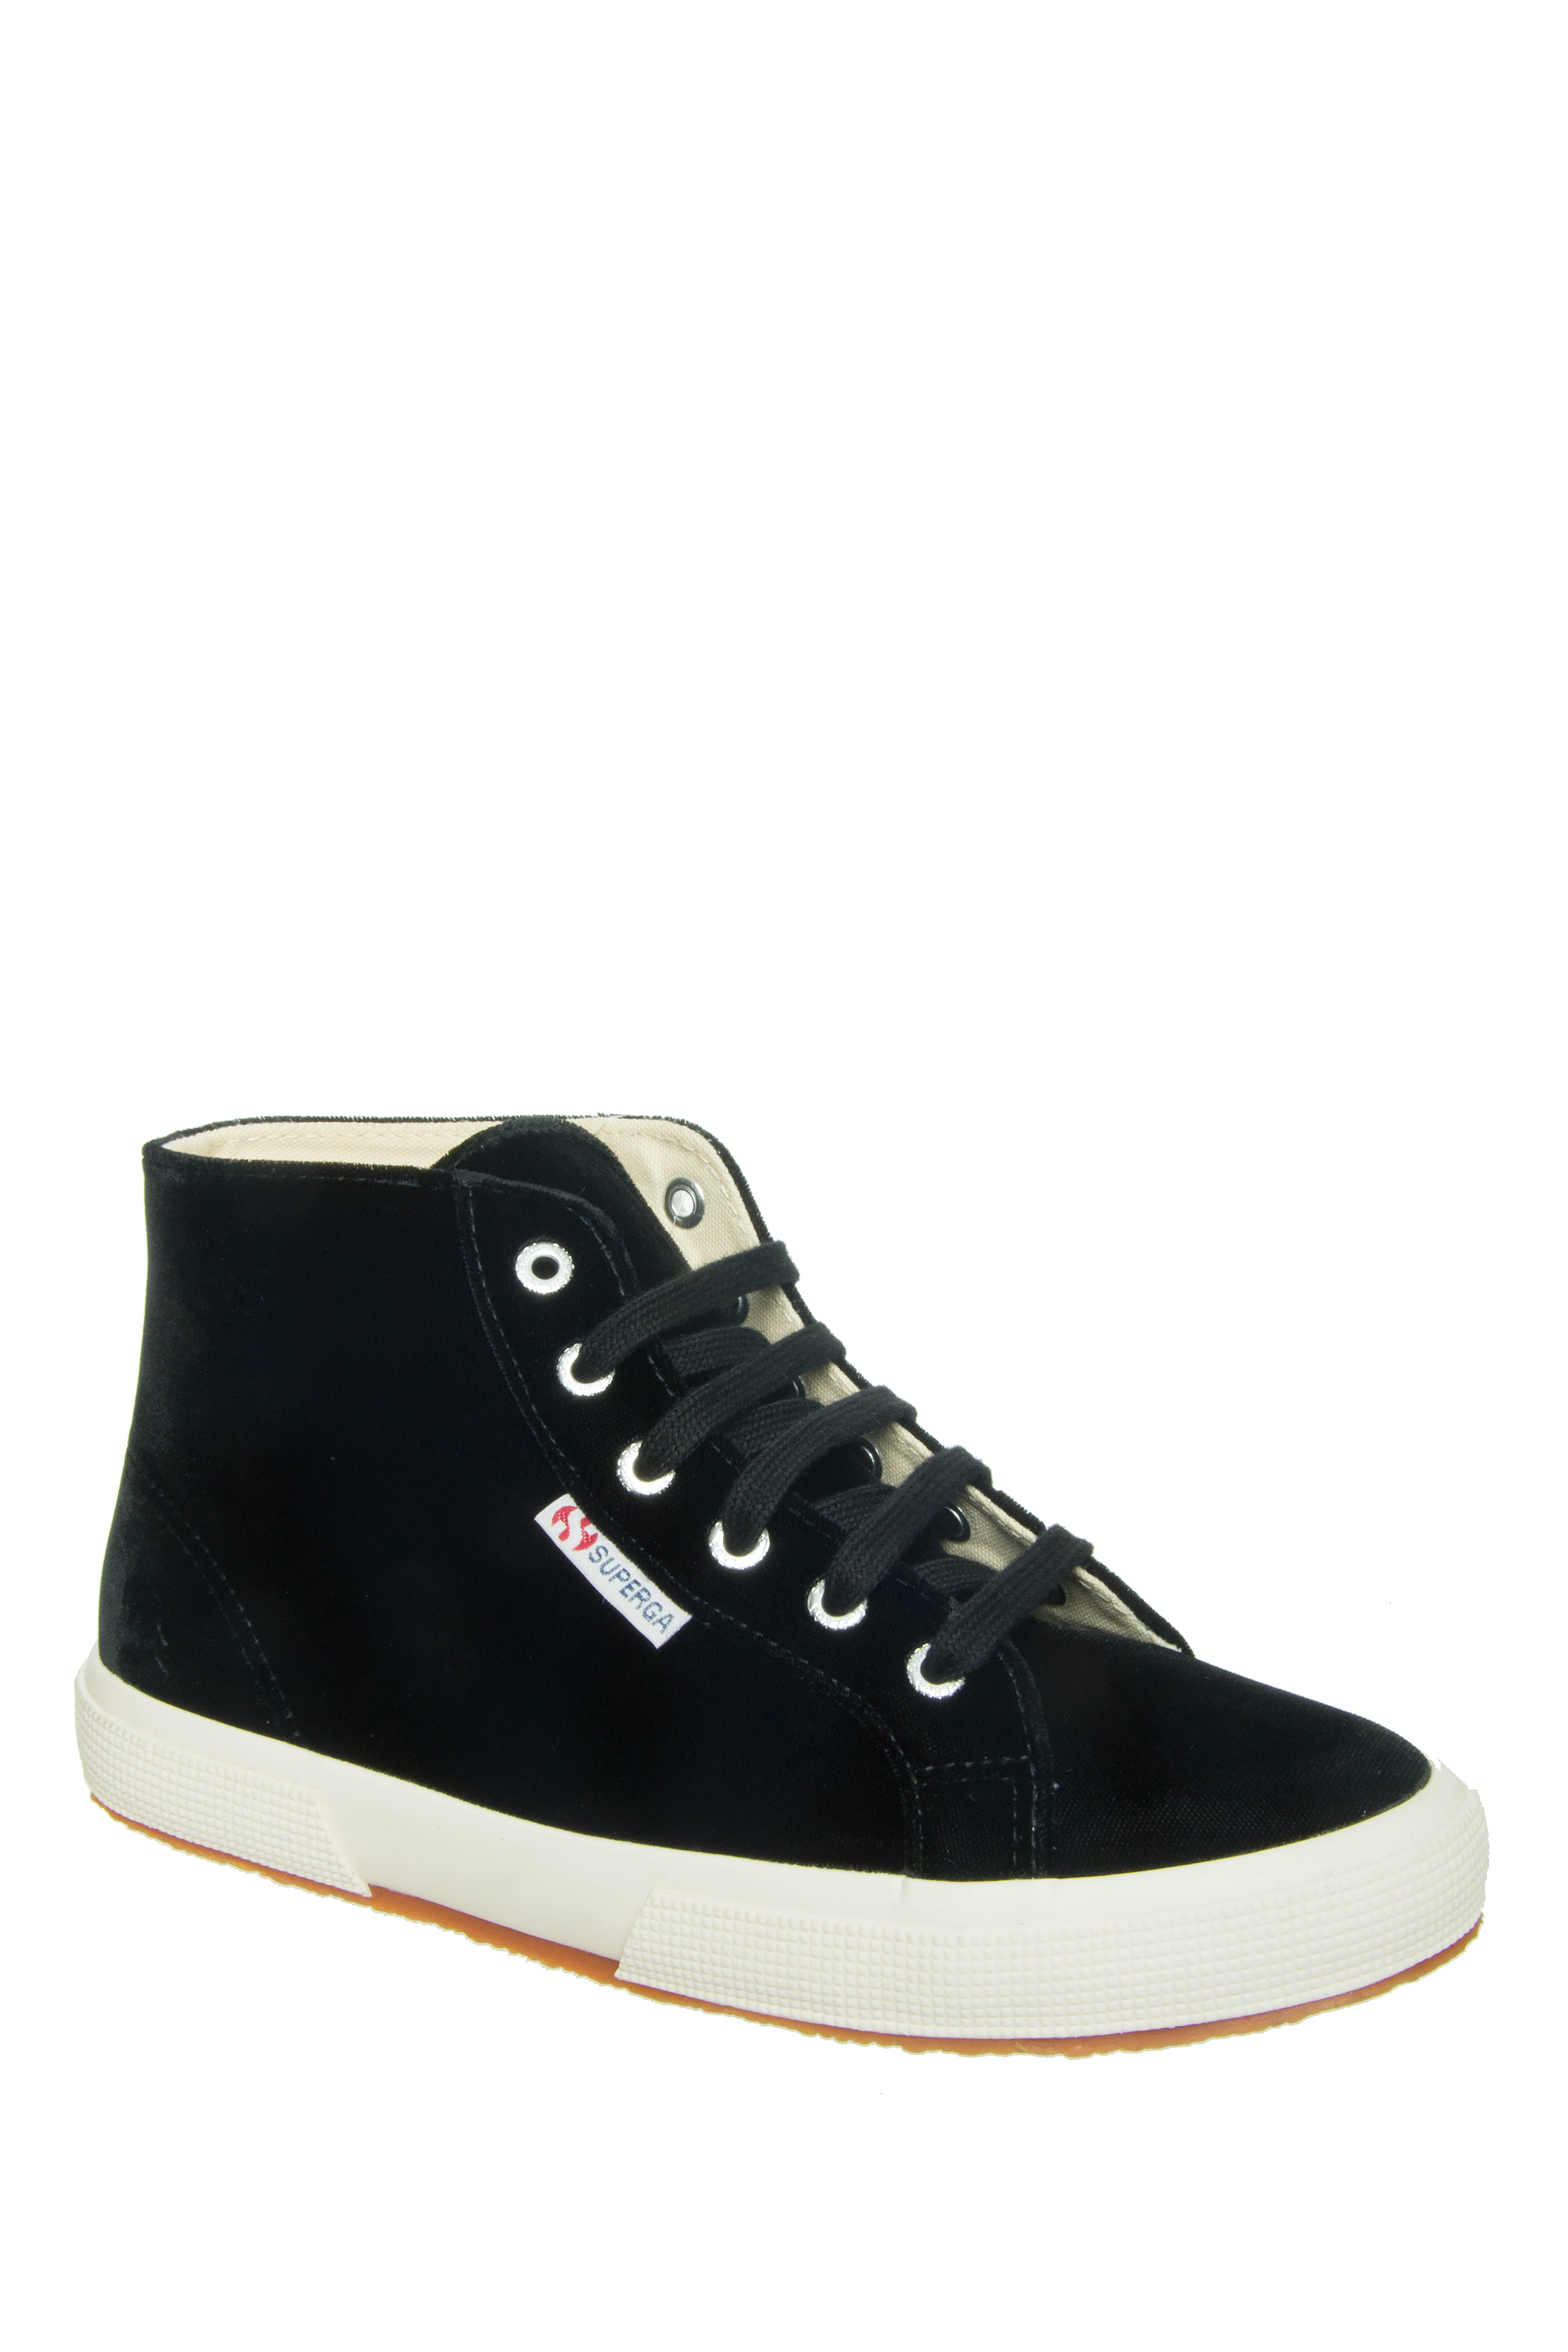 Superga Velvet Hi Top Sneakers - Black